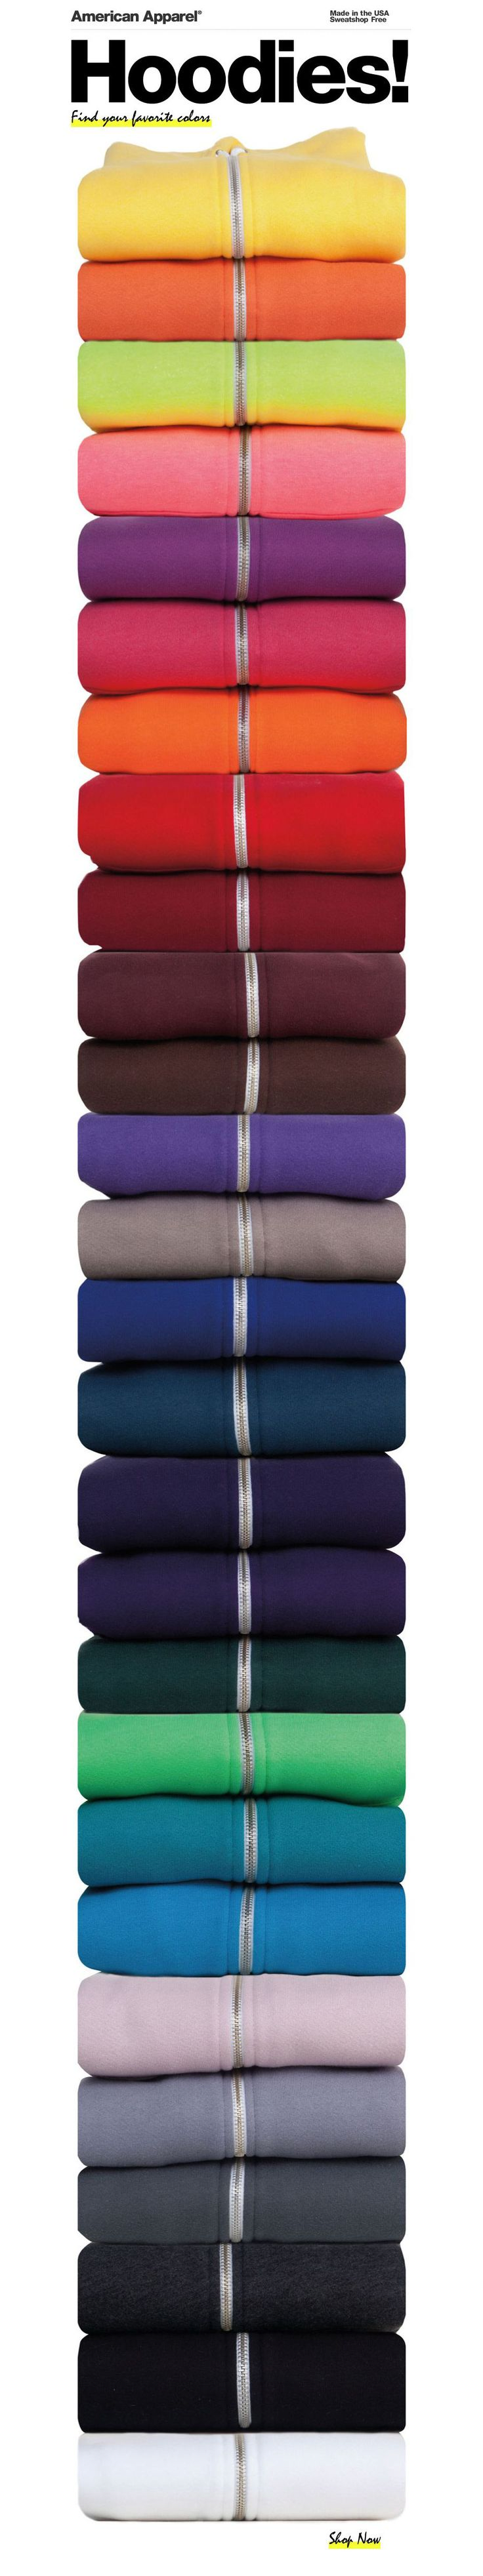 got this email from american apparel today...drooooling. very clever. 29 colors - $46.00 each